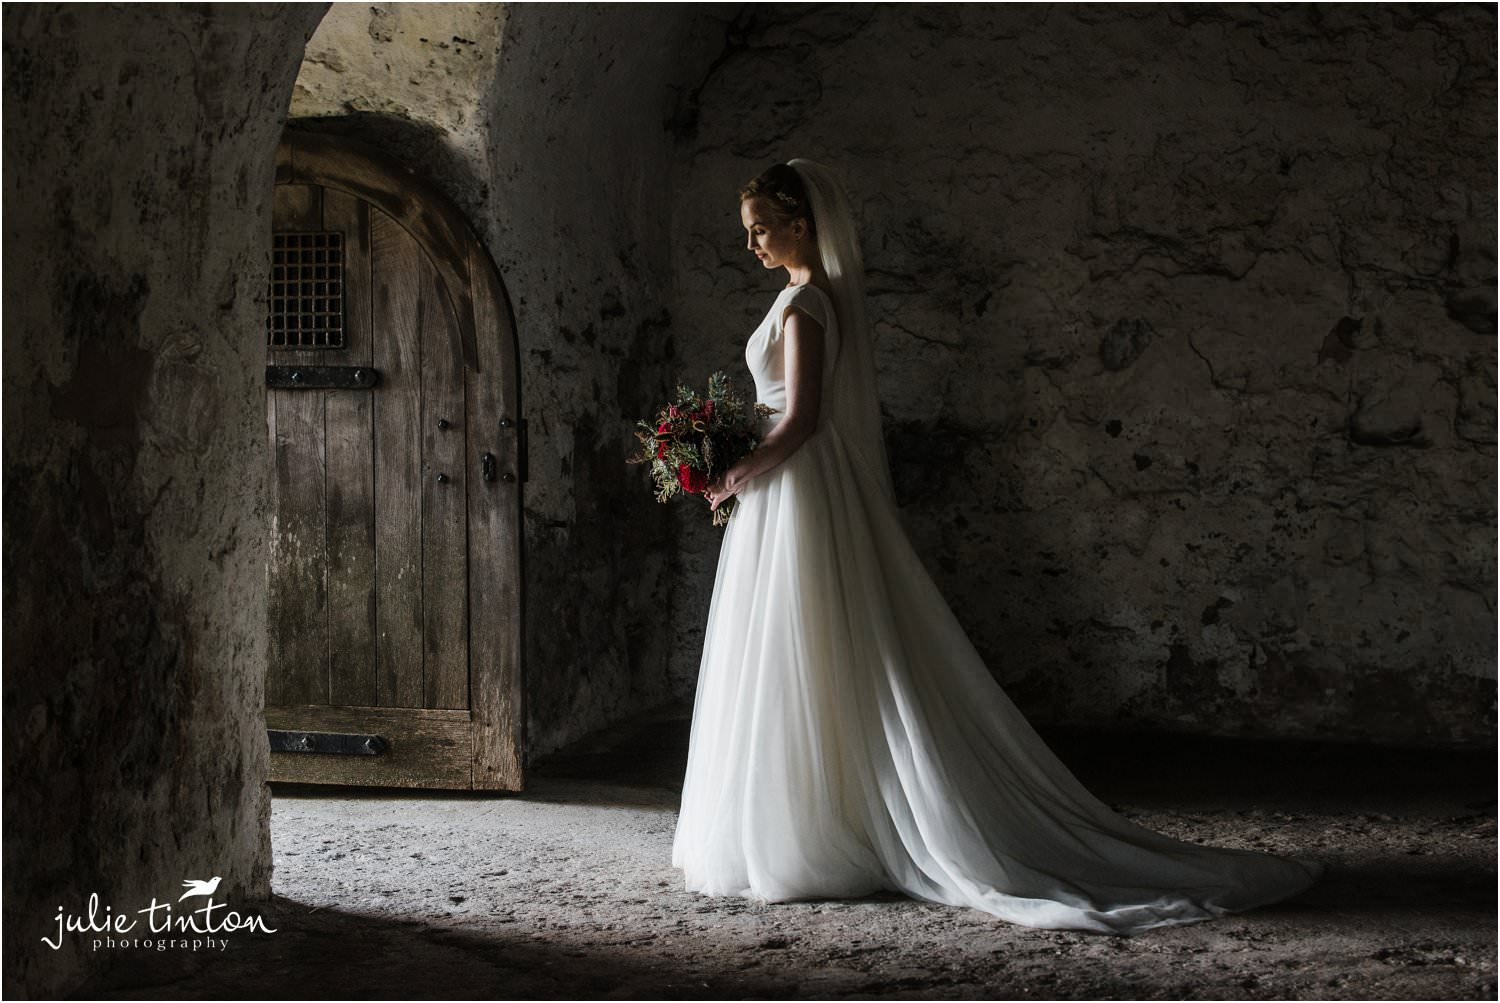 A bride in a doorway with bouquet at Inchcolm Island Abbey